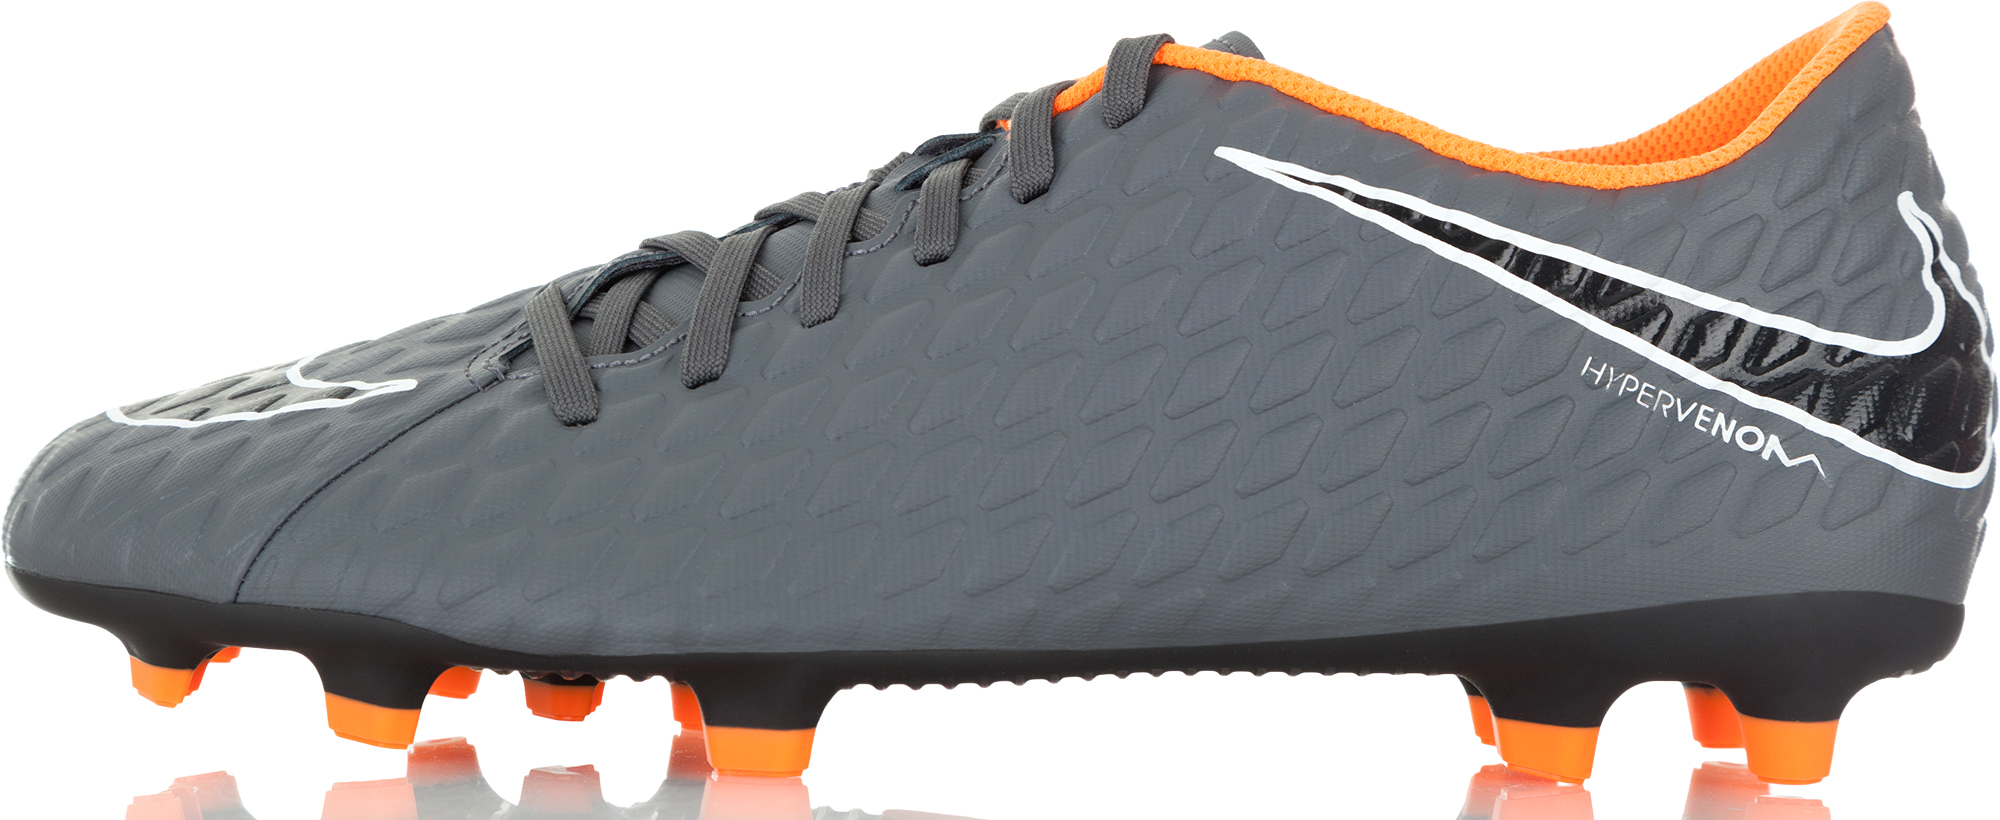 Nike Бутсы мужские Nike Hypervenom Phantom 3 Club FG детские бутсы nike бутсы nike jr phantom 3 elite df fg ah7292 081